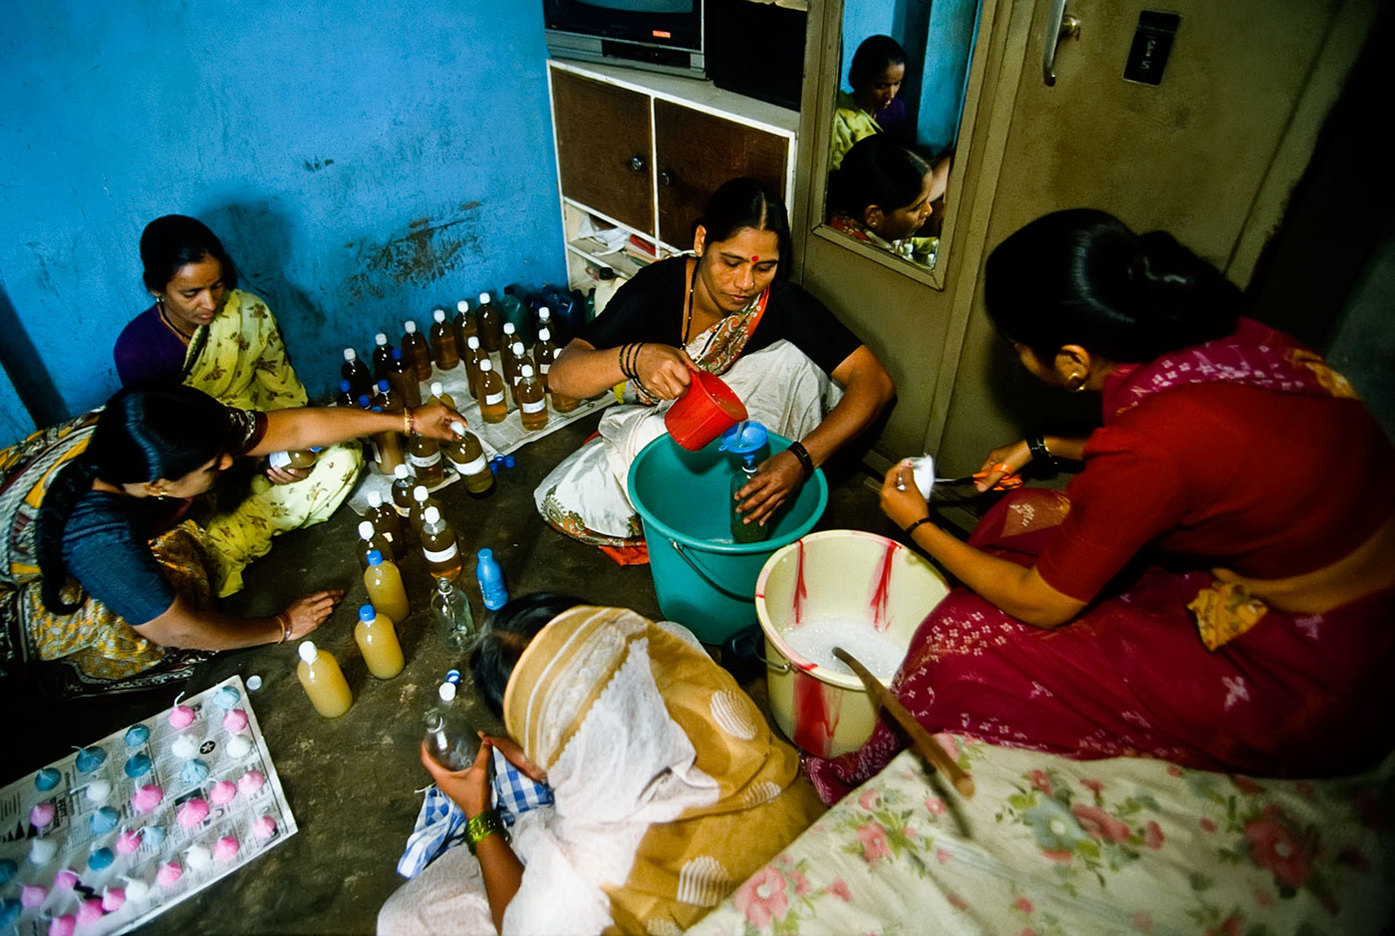 Microbusiness - women's candle-making enterprise in Kerala, India : BUSINESS & INDUSTRY : Viviane Moos |  Documentary Photographer